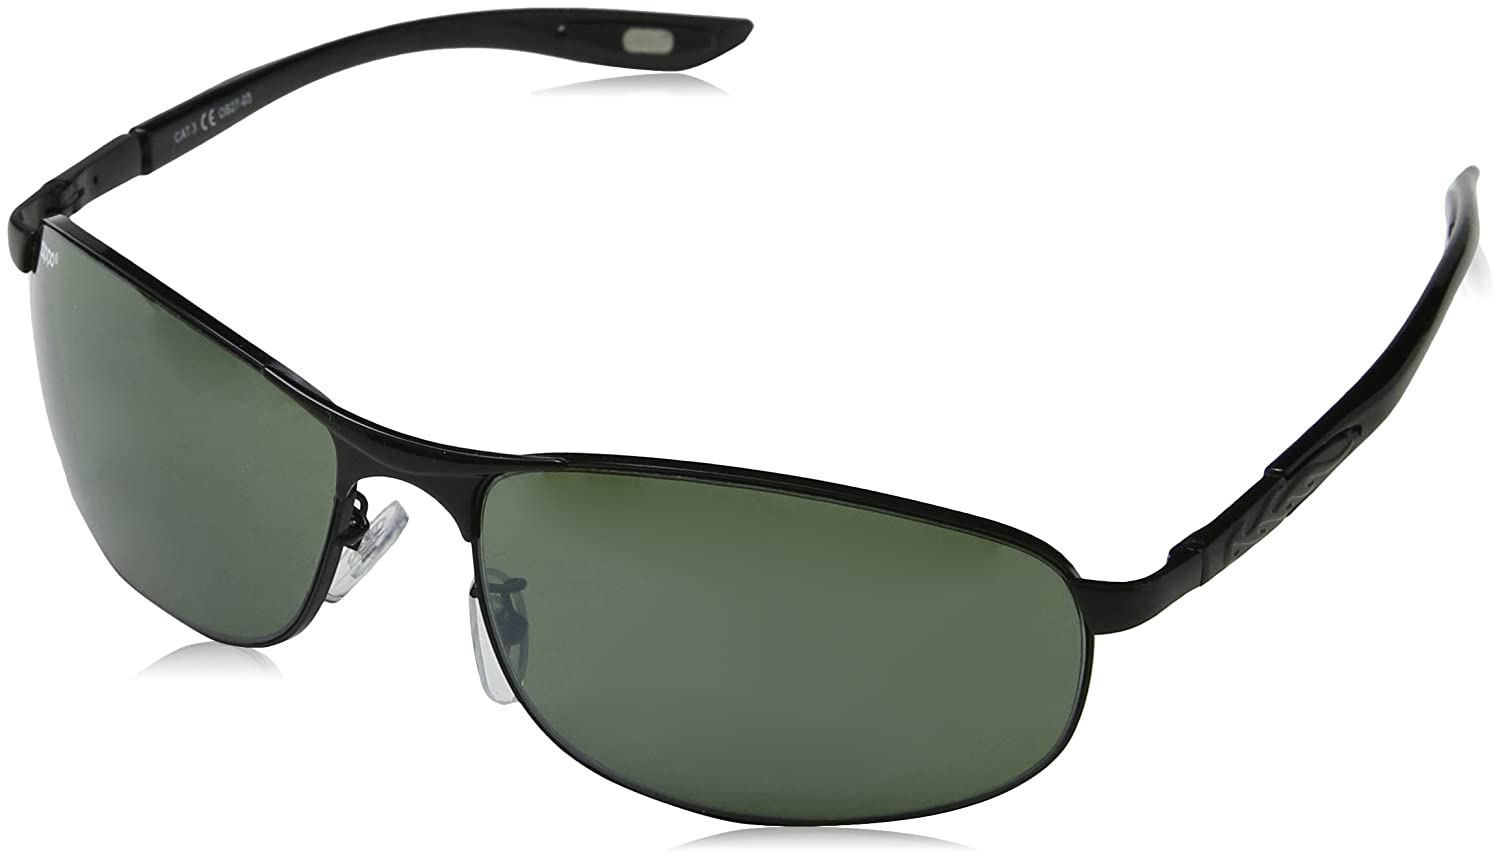 5555bd9c22cde Zippo Unisex s Frame and Temples Sunglasses